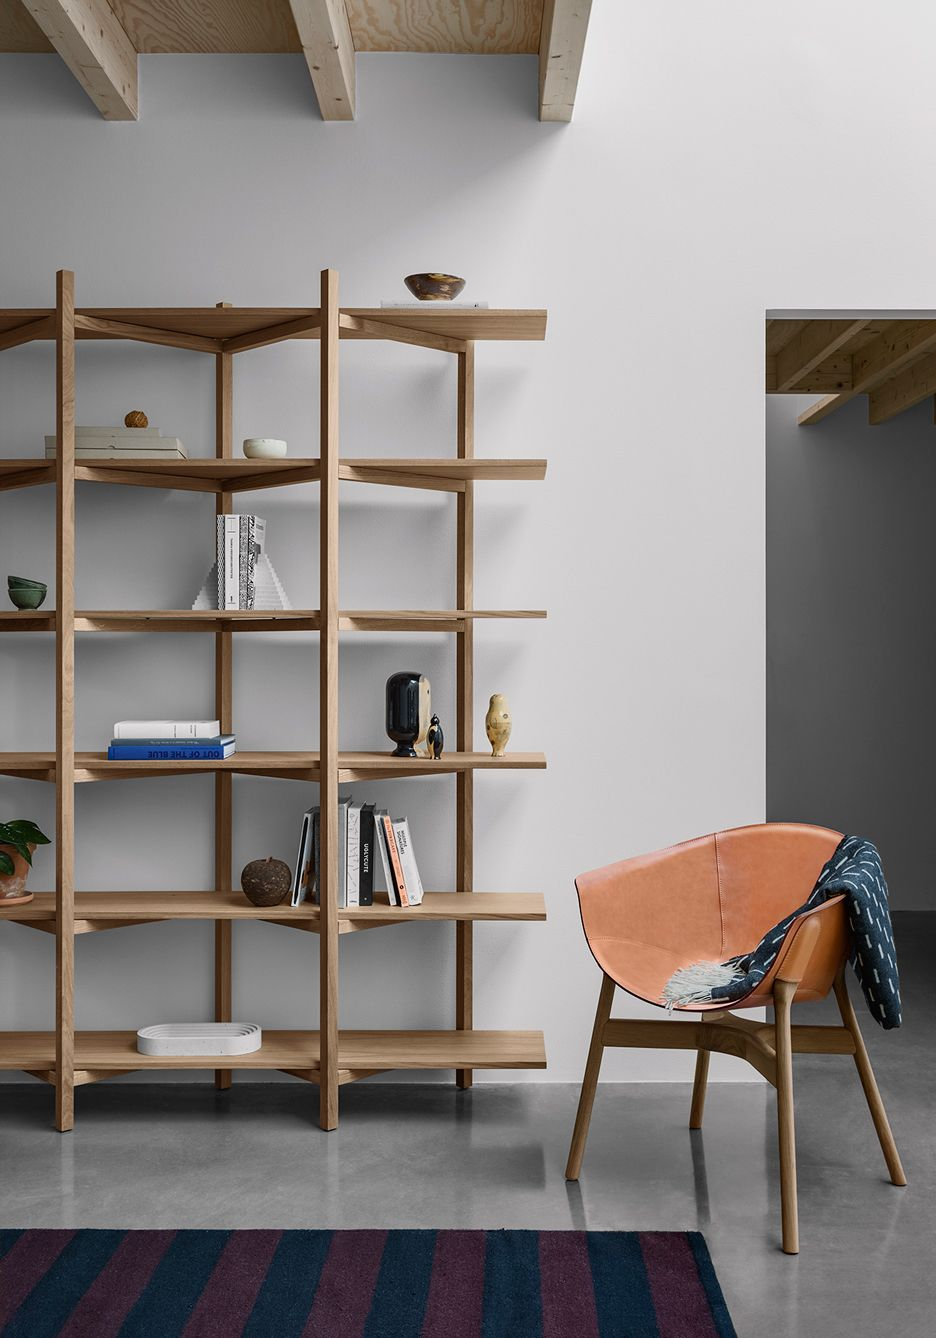 Zig Zag Shelf By Studio Deform For Hem Will Launch At